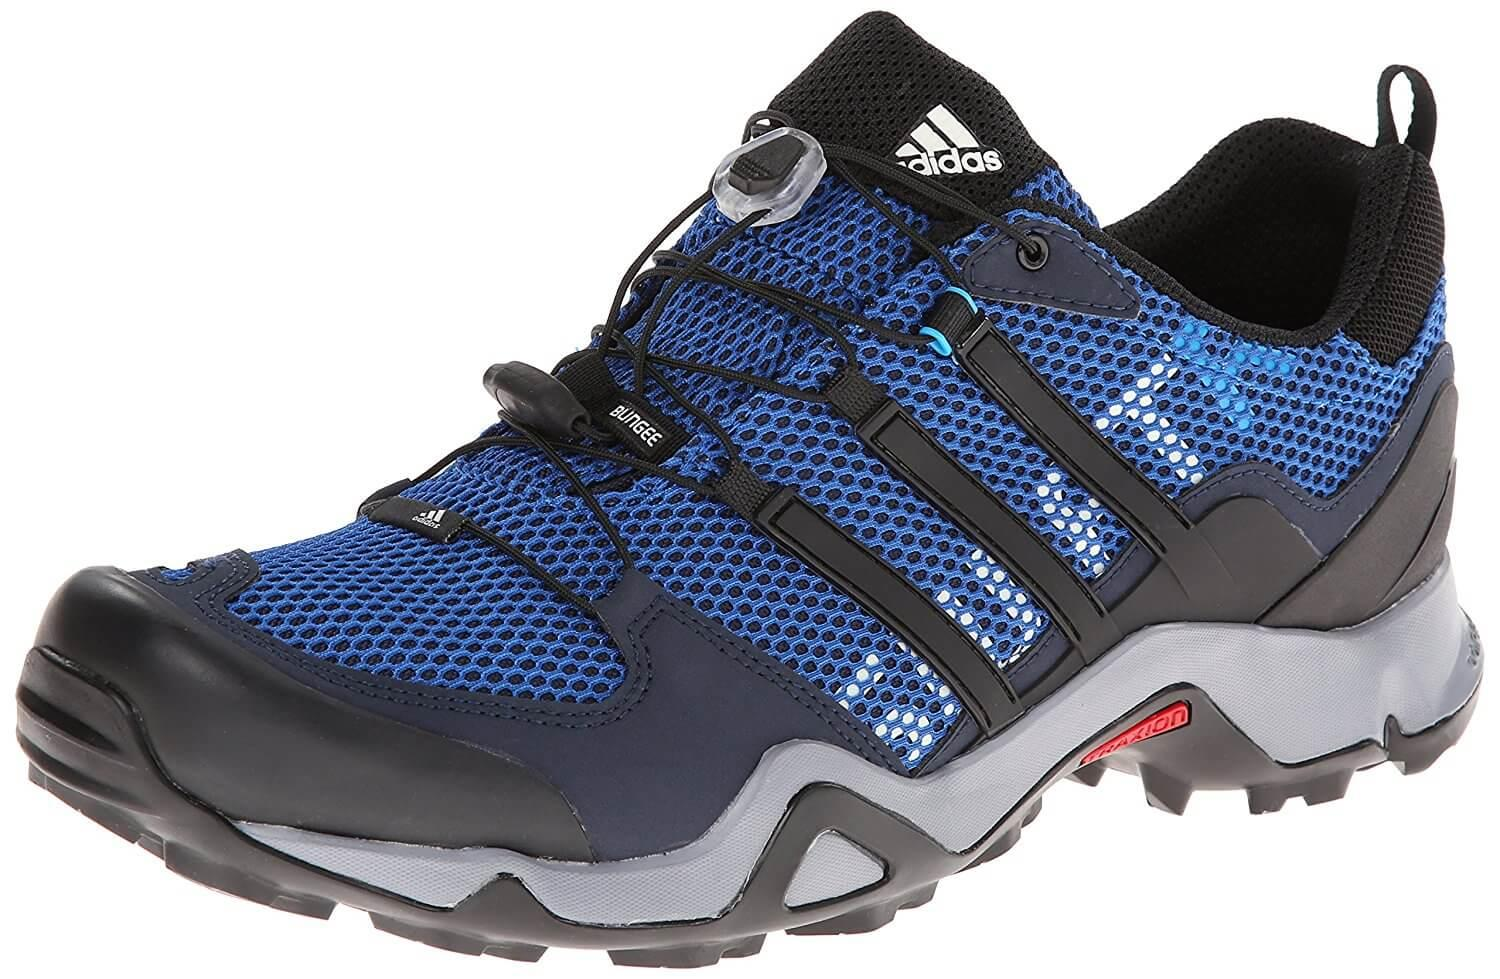 The Adidas Terrex Swift R GTX is an impressive and highly capable trail runner.